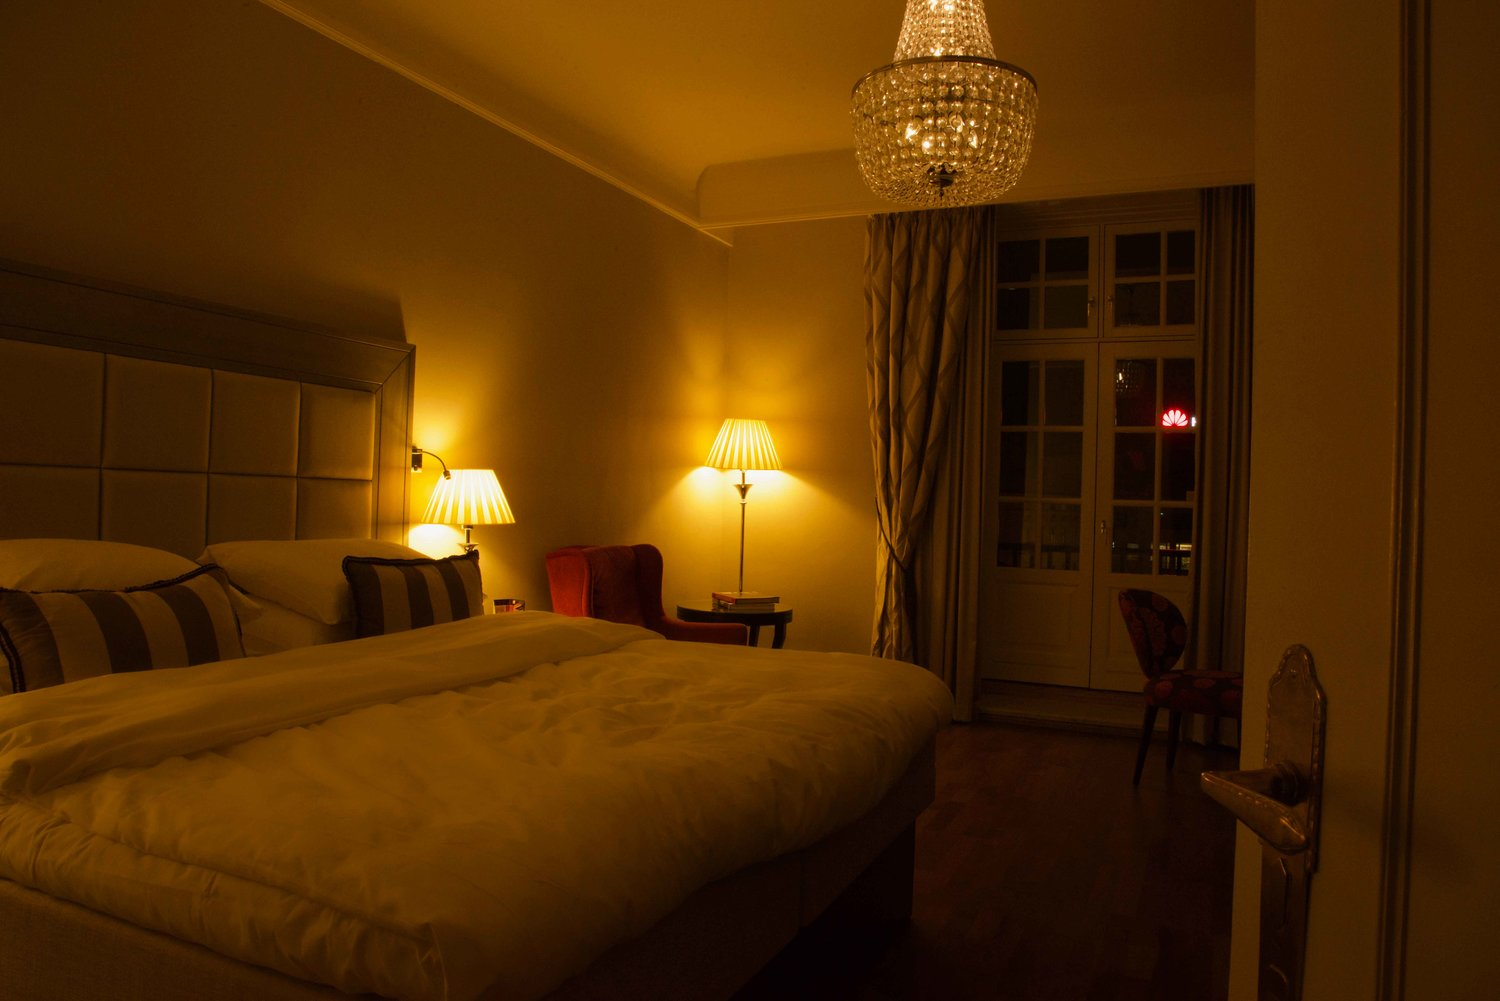 The Grand Hotel, Oslo, Norway, superior room. Image©thingstodot.com